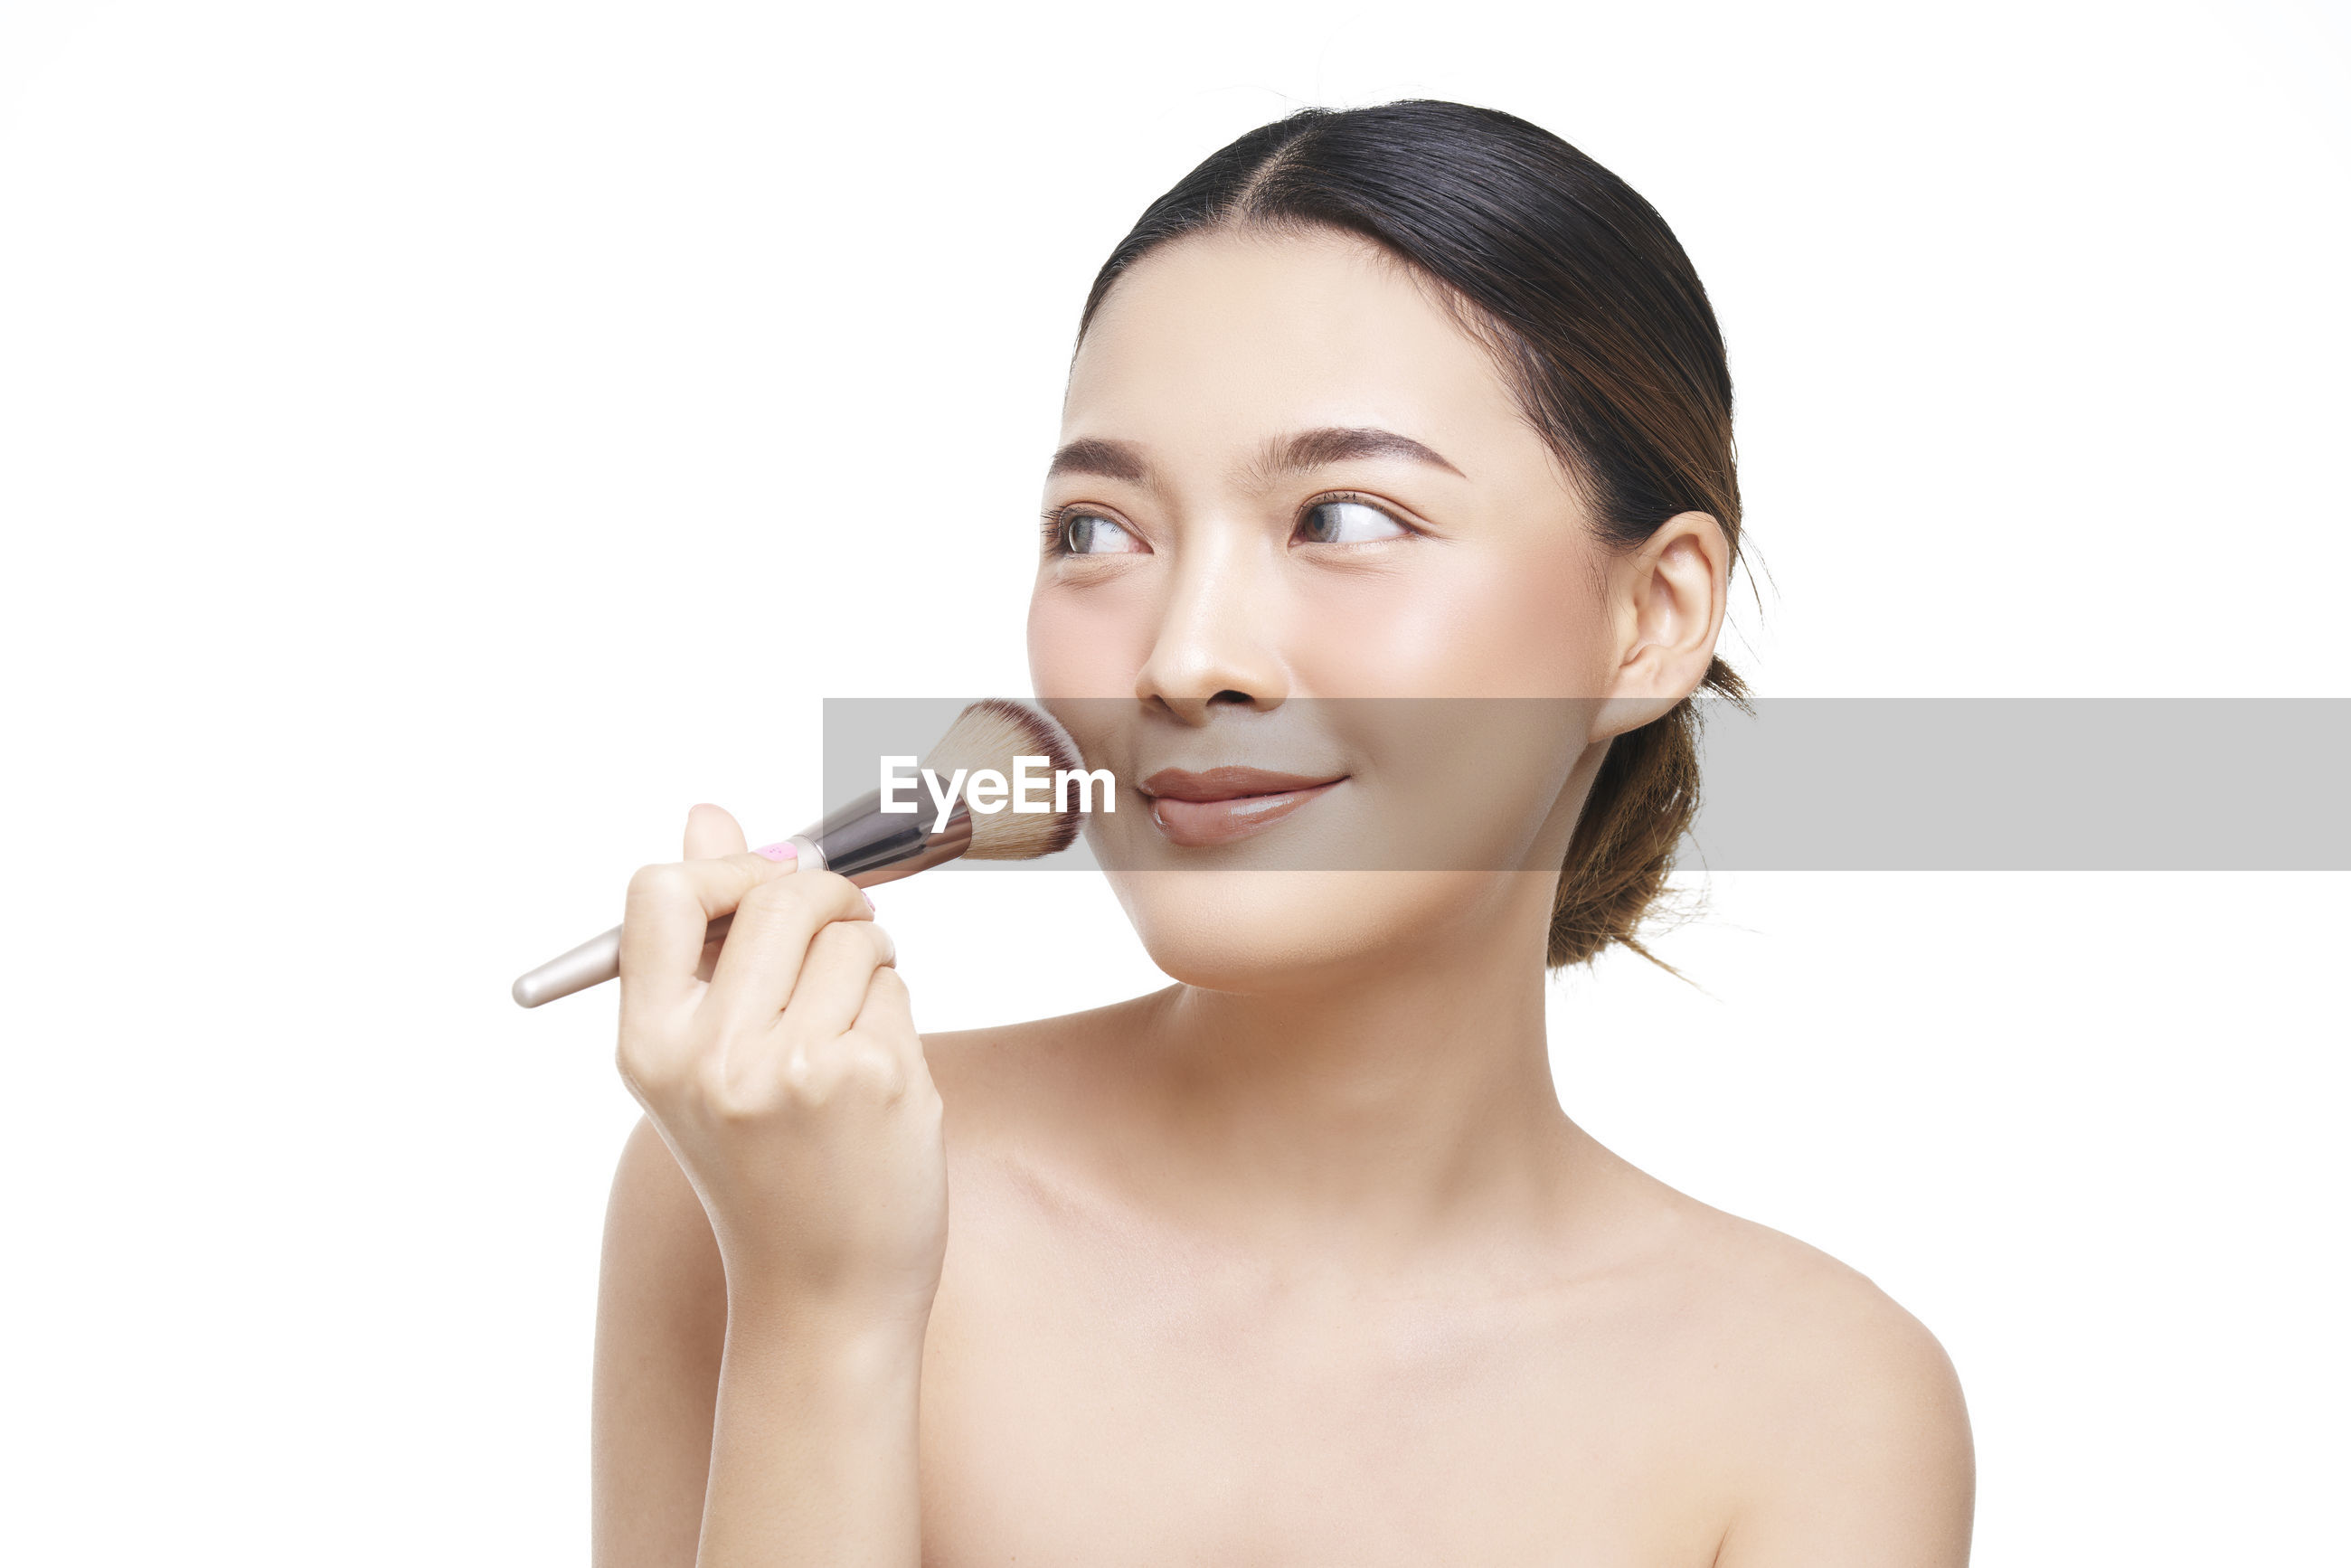 Close-up of smiling young woman applying make-up against white background